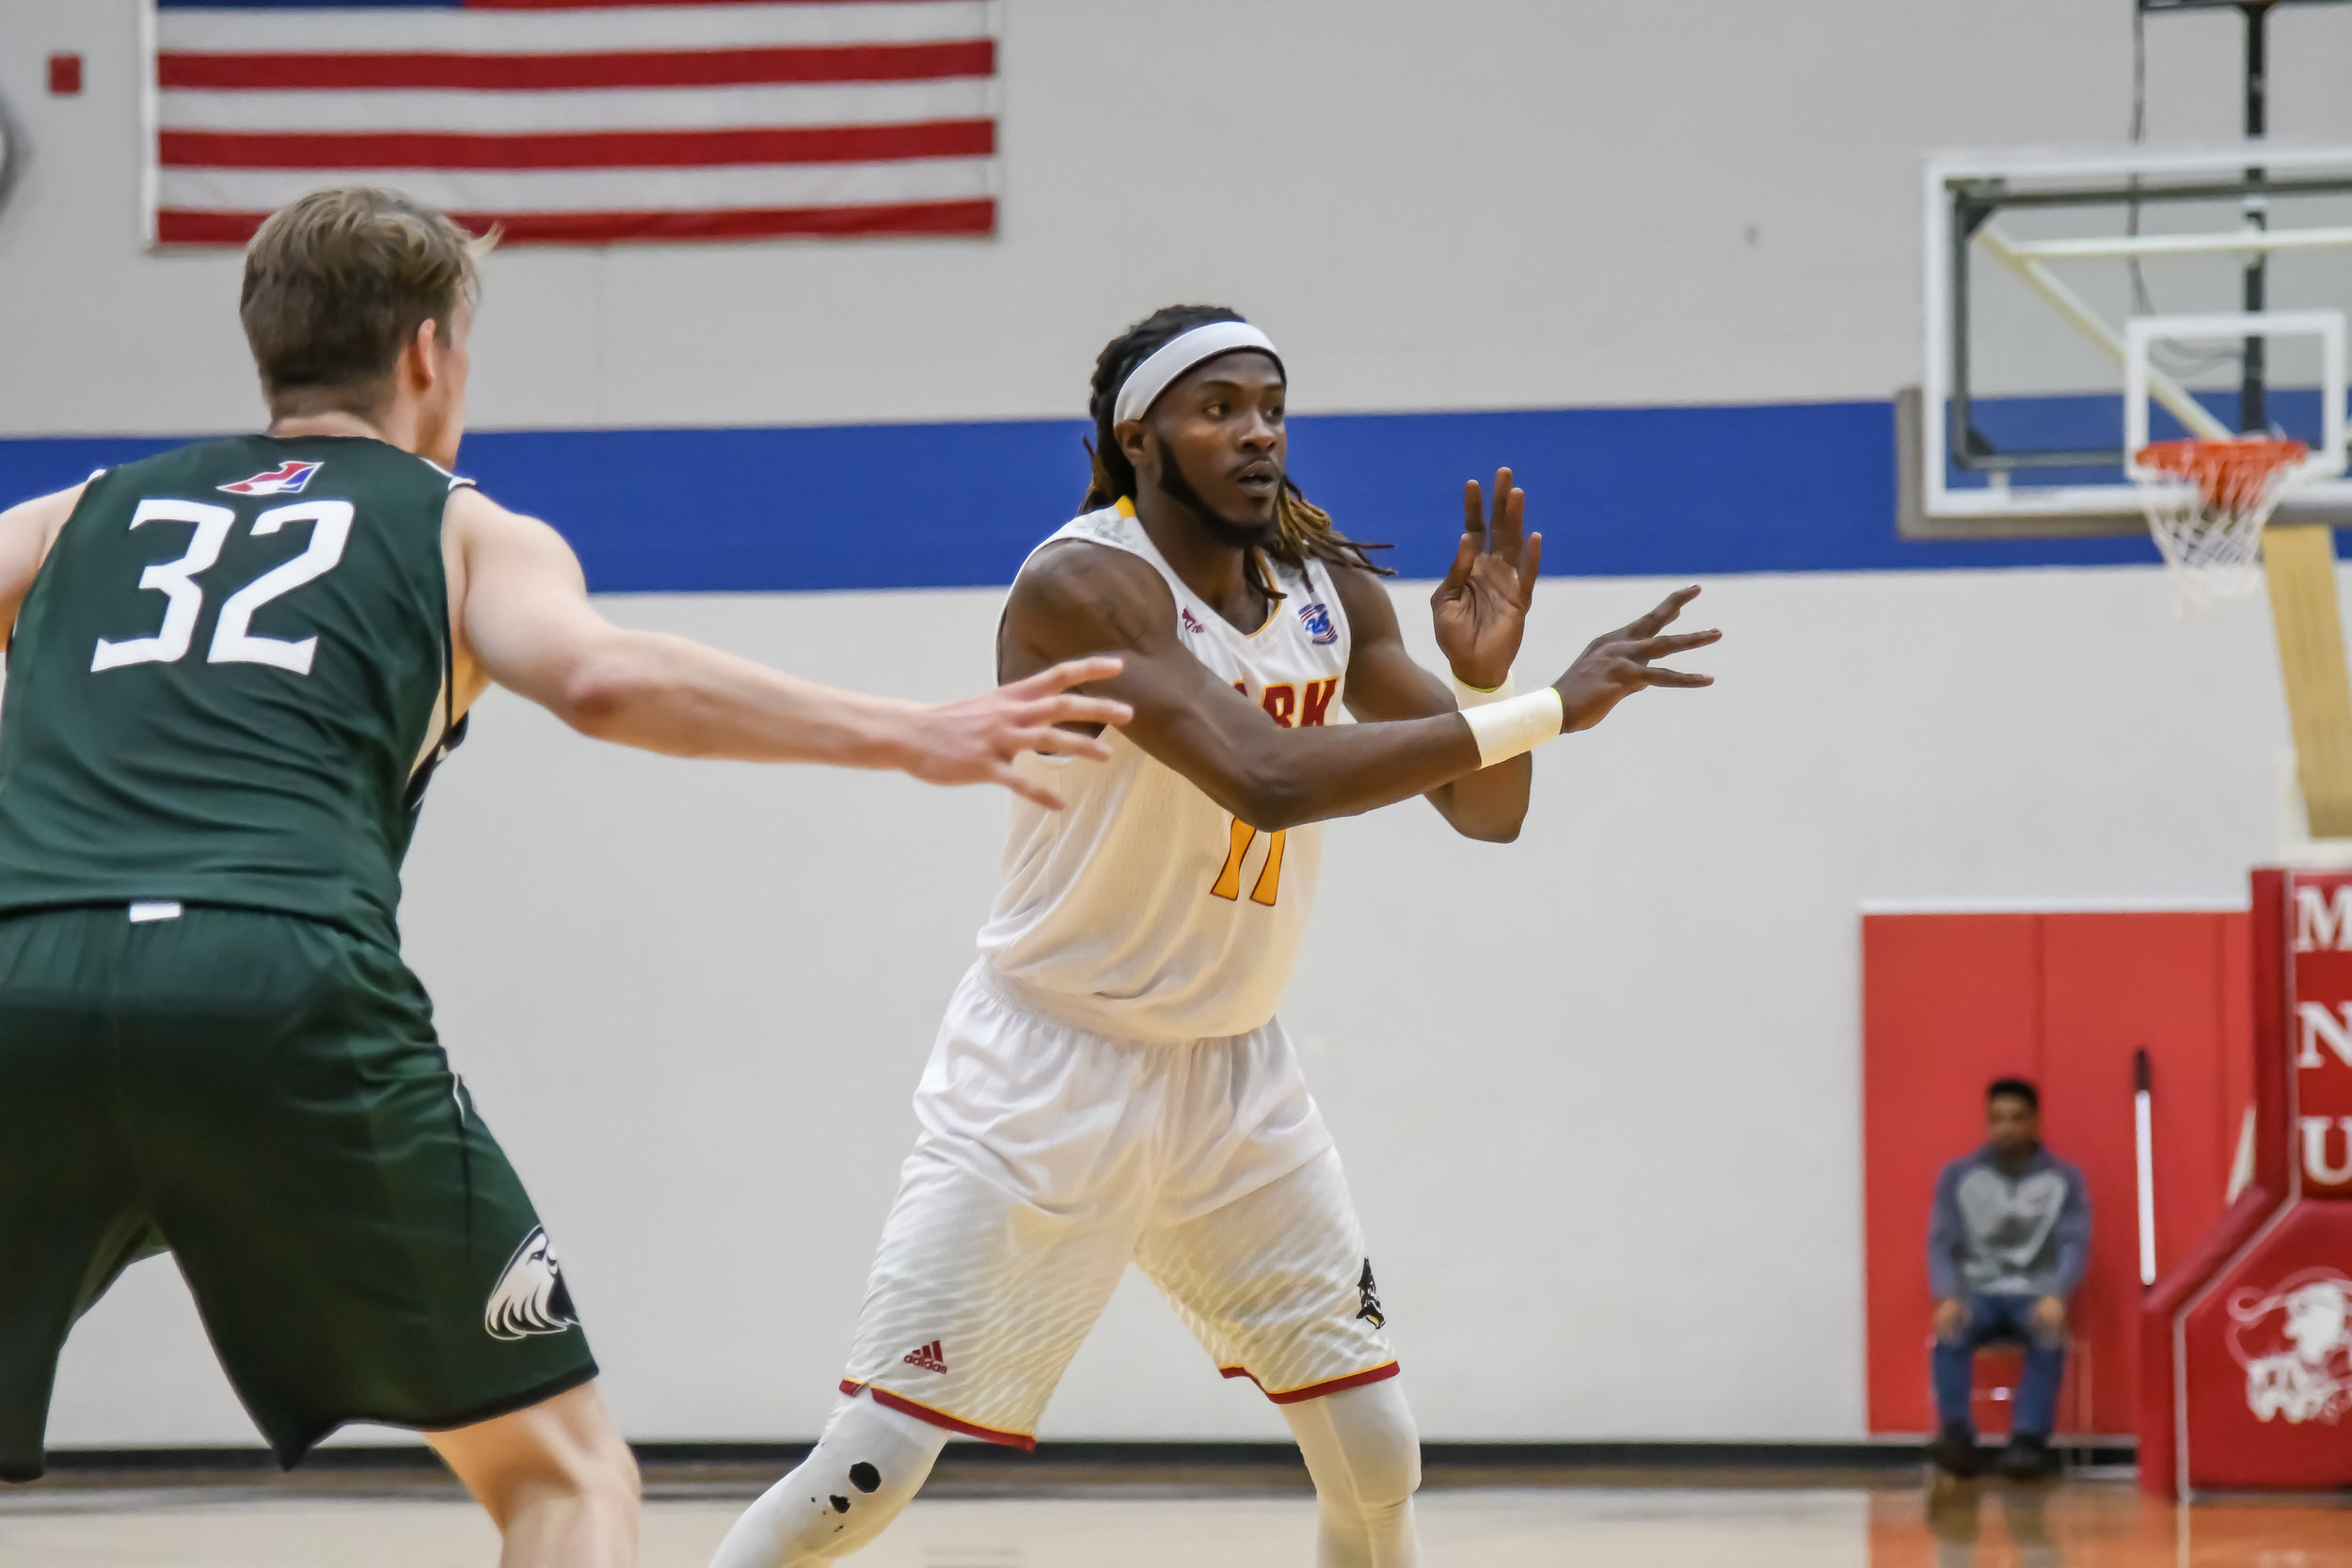 Park University/Special to the Citizen  Park basketball player Joseph Mebaley will be featured in a 21-minute documentary that will be played on Feb. 15 at 5:30 p.m. on the Parkville campus.